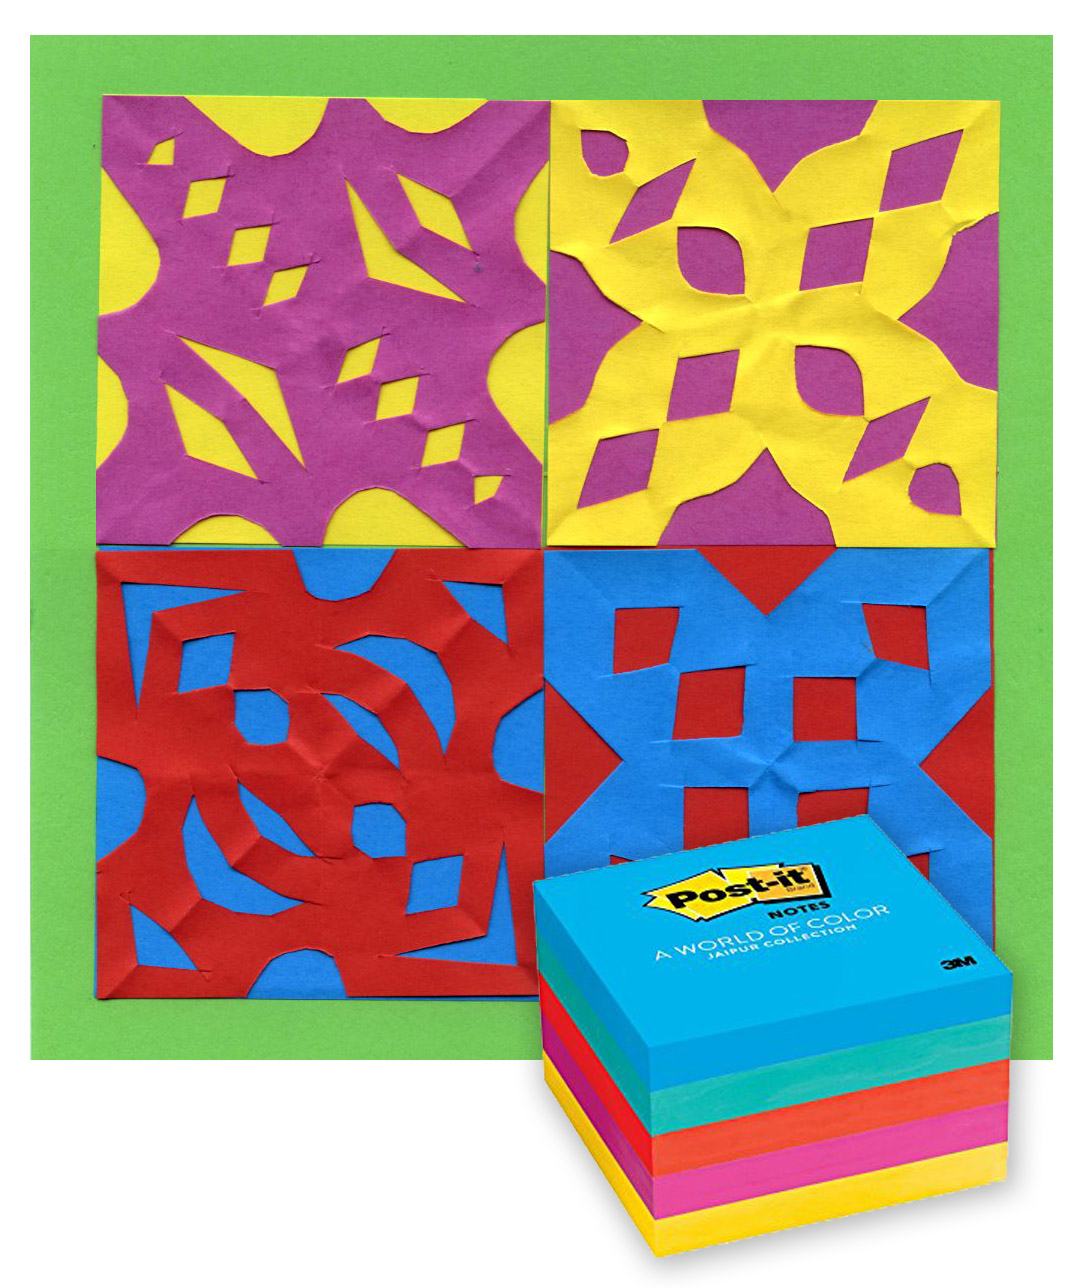 Papel Picado Holiday Card · Art Projects for Kids